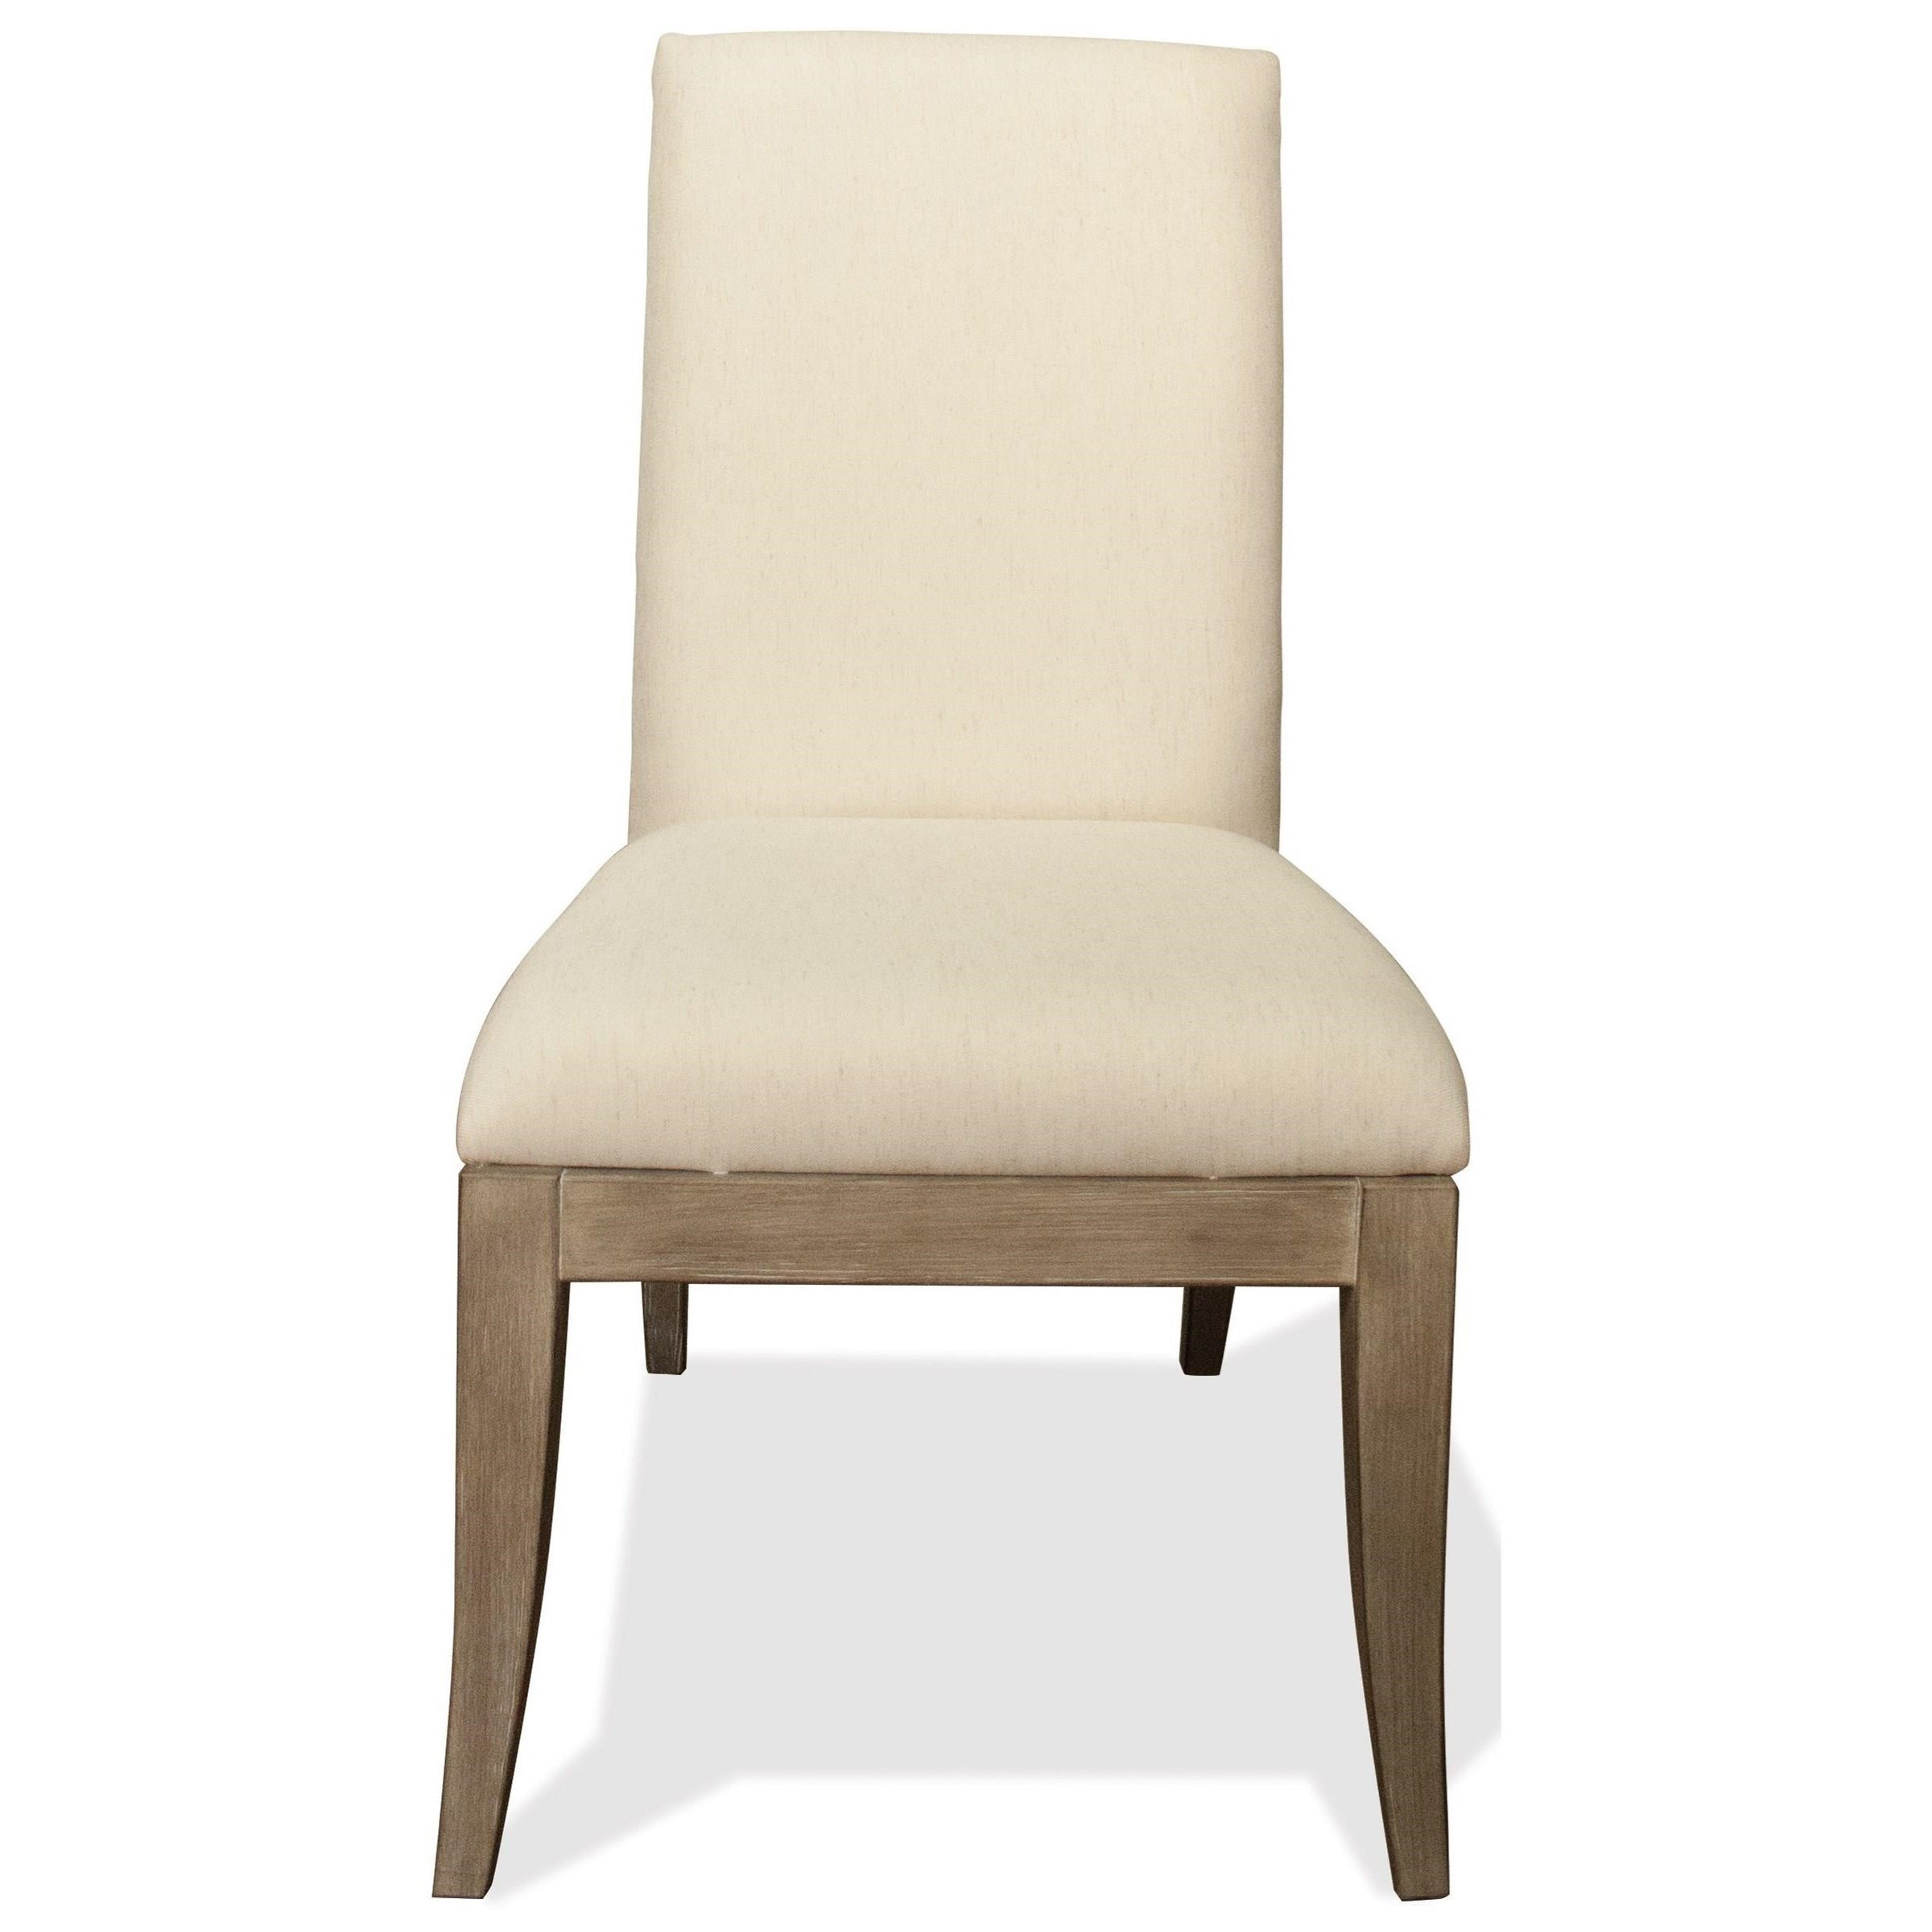 Stephanie Stephanie Upholstered Side Chair by Riverside Furniture at Morris Home